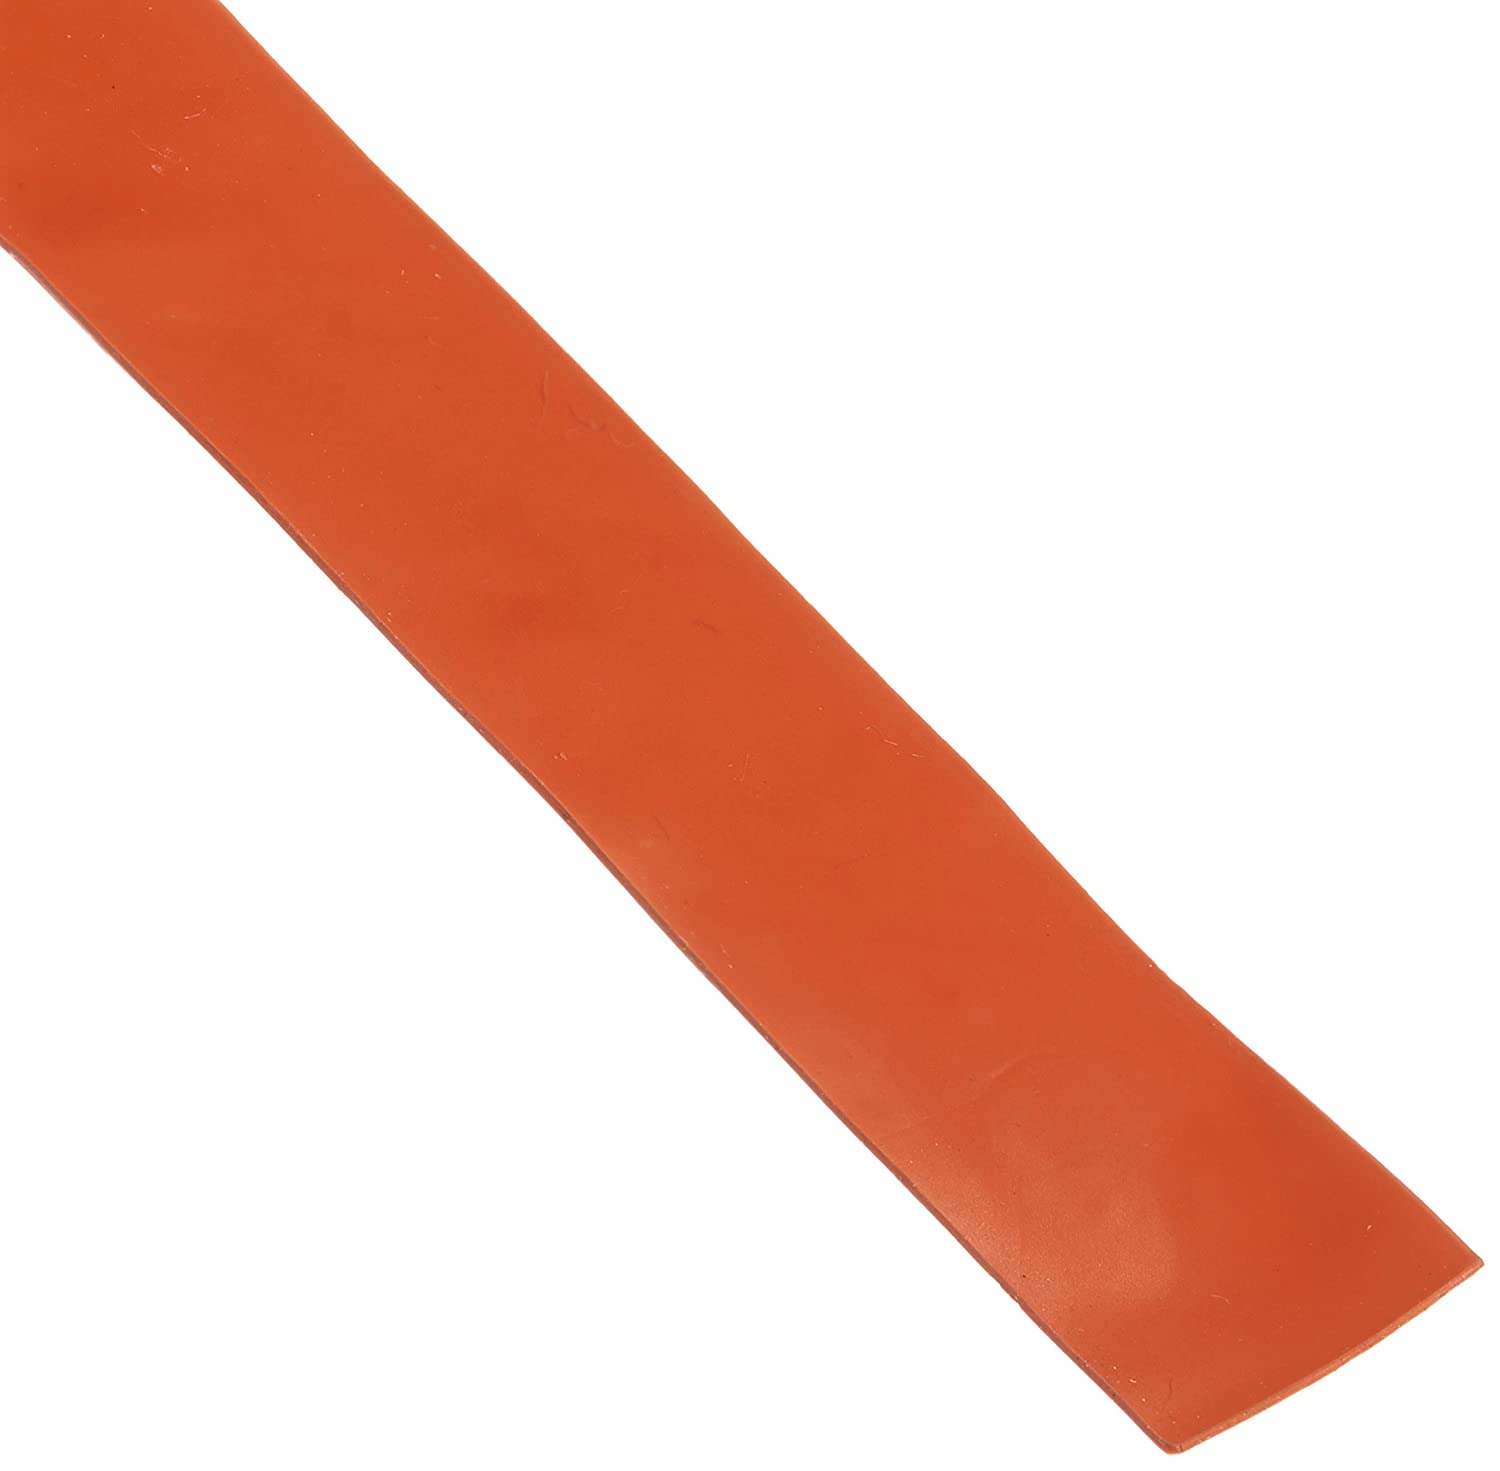 No Backing Silicone Sheet Red 0.5 Width 36 Length Rubber-Call Industrial 36-005R-05m-005-036 0.5 mm Thickness 36 Length 50A Durometer Smooth Finish 0.5 Width